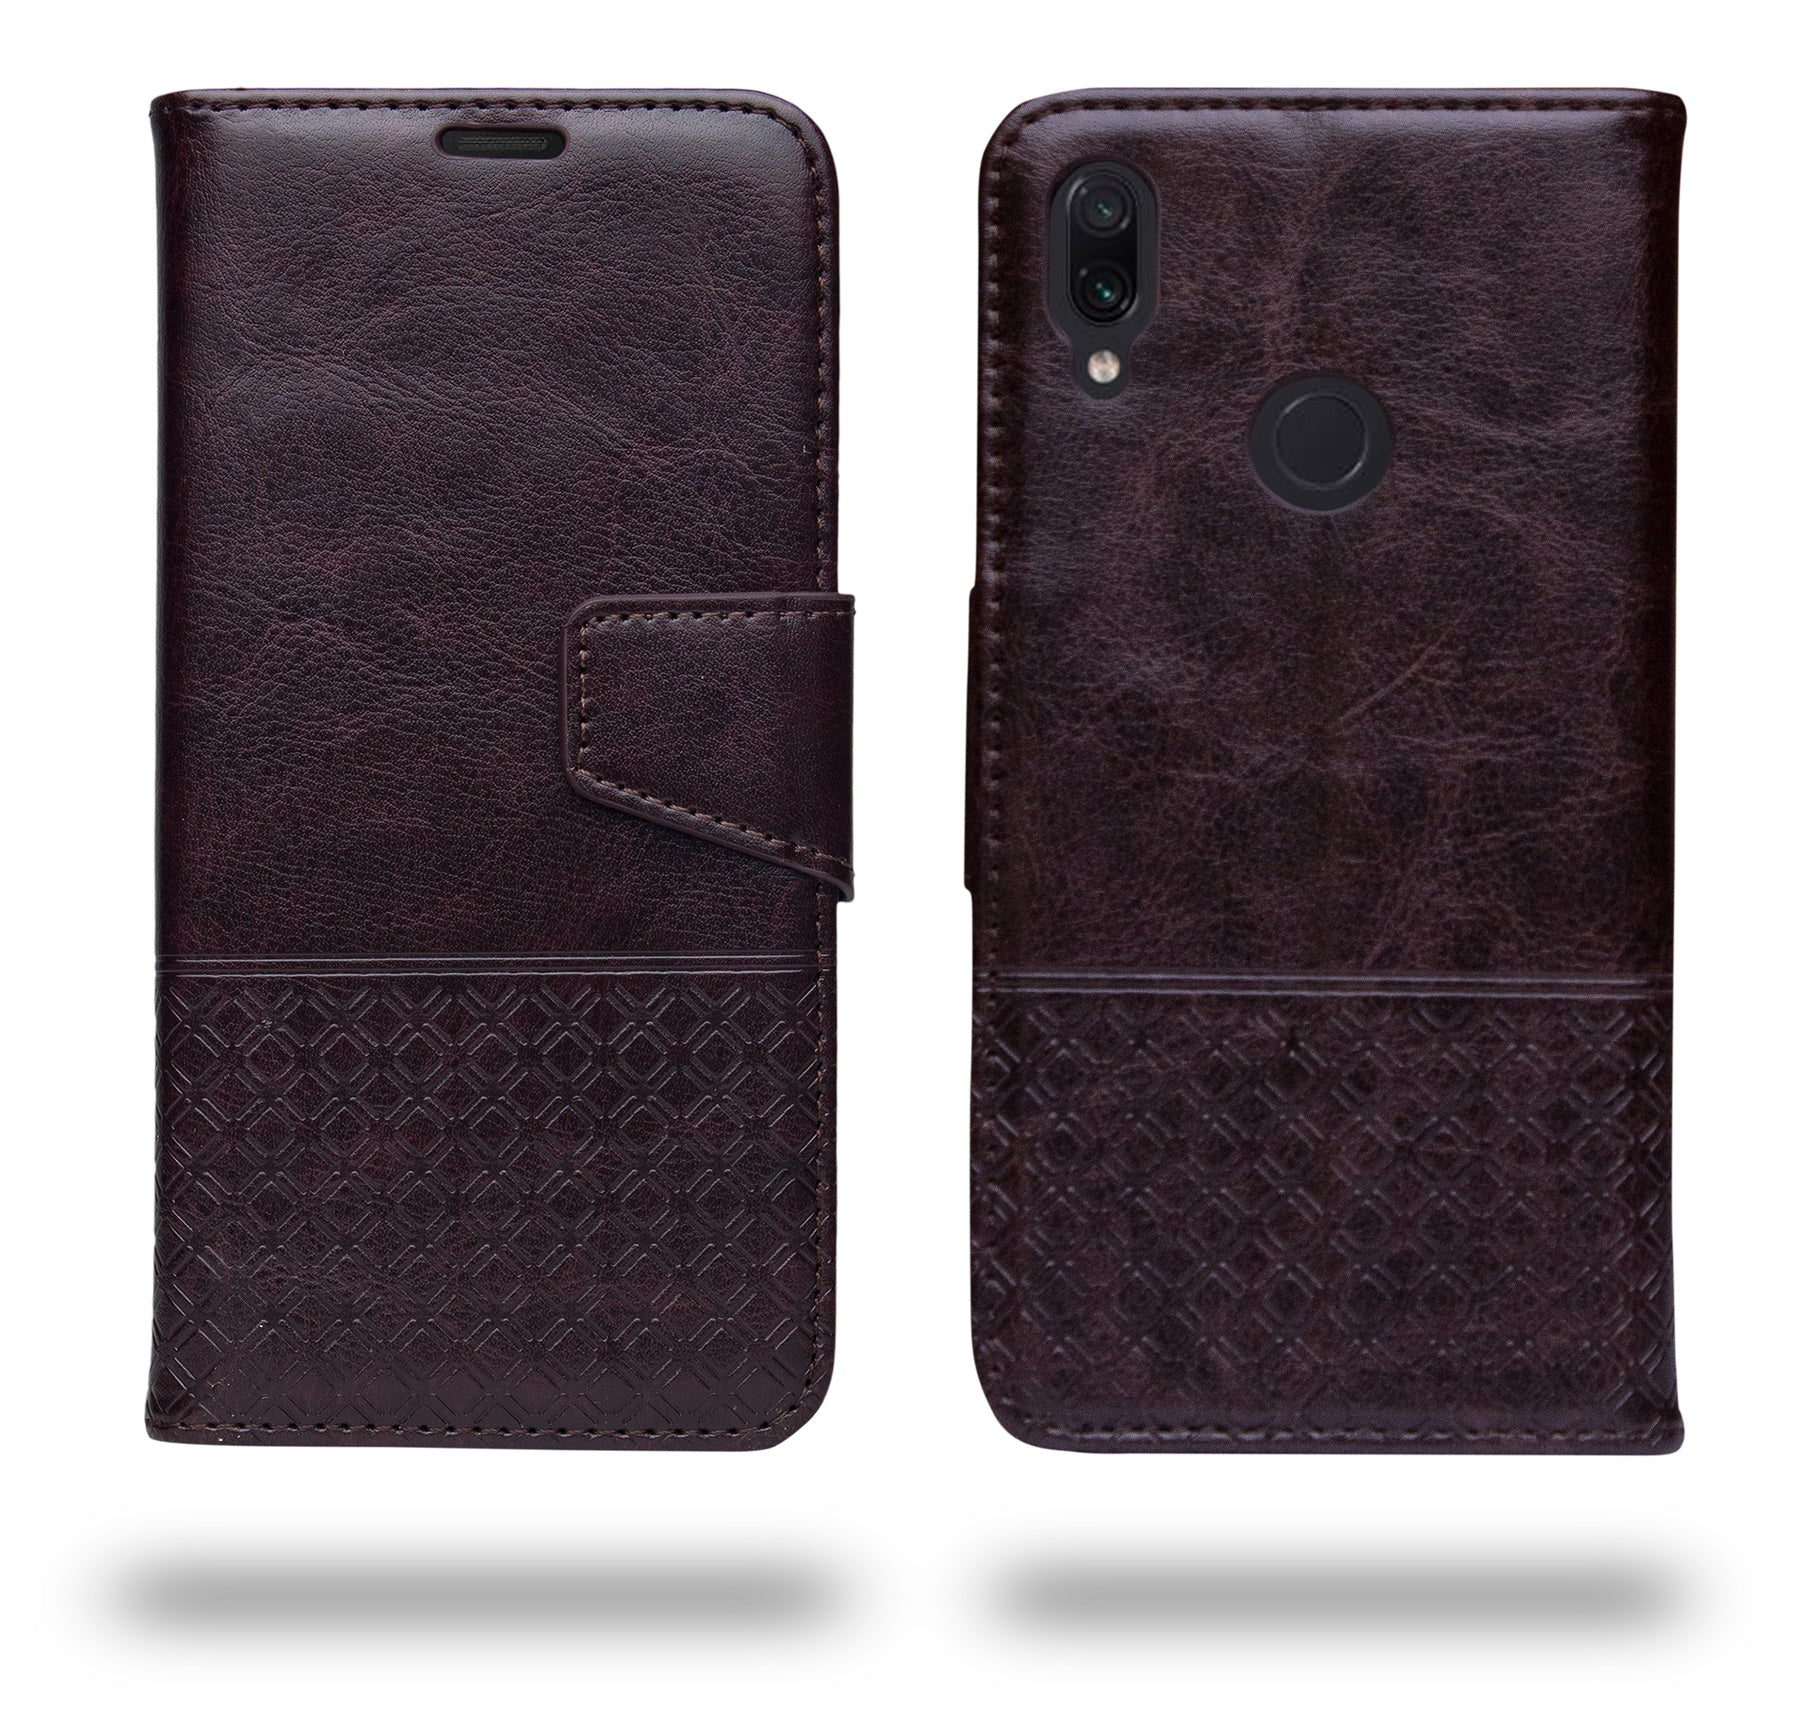 Ceego Luxuria Wallet Flip Cover for Xiaomi Redmi Note 7 / Redmi Note 7 Pro / Redmi Note 7s  (Chestnut brown)